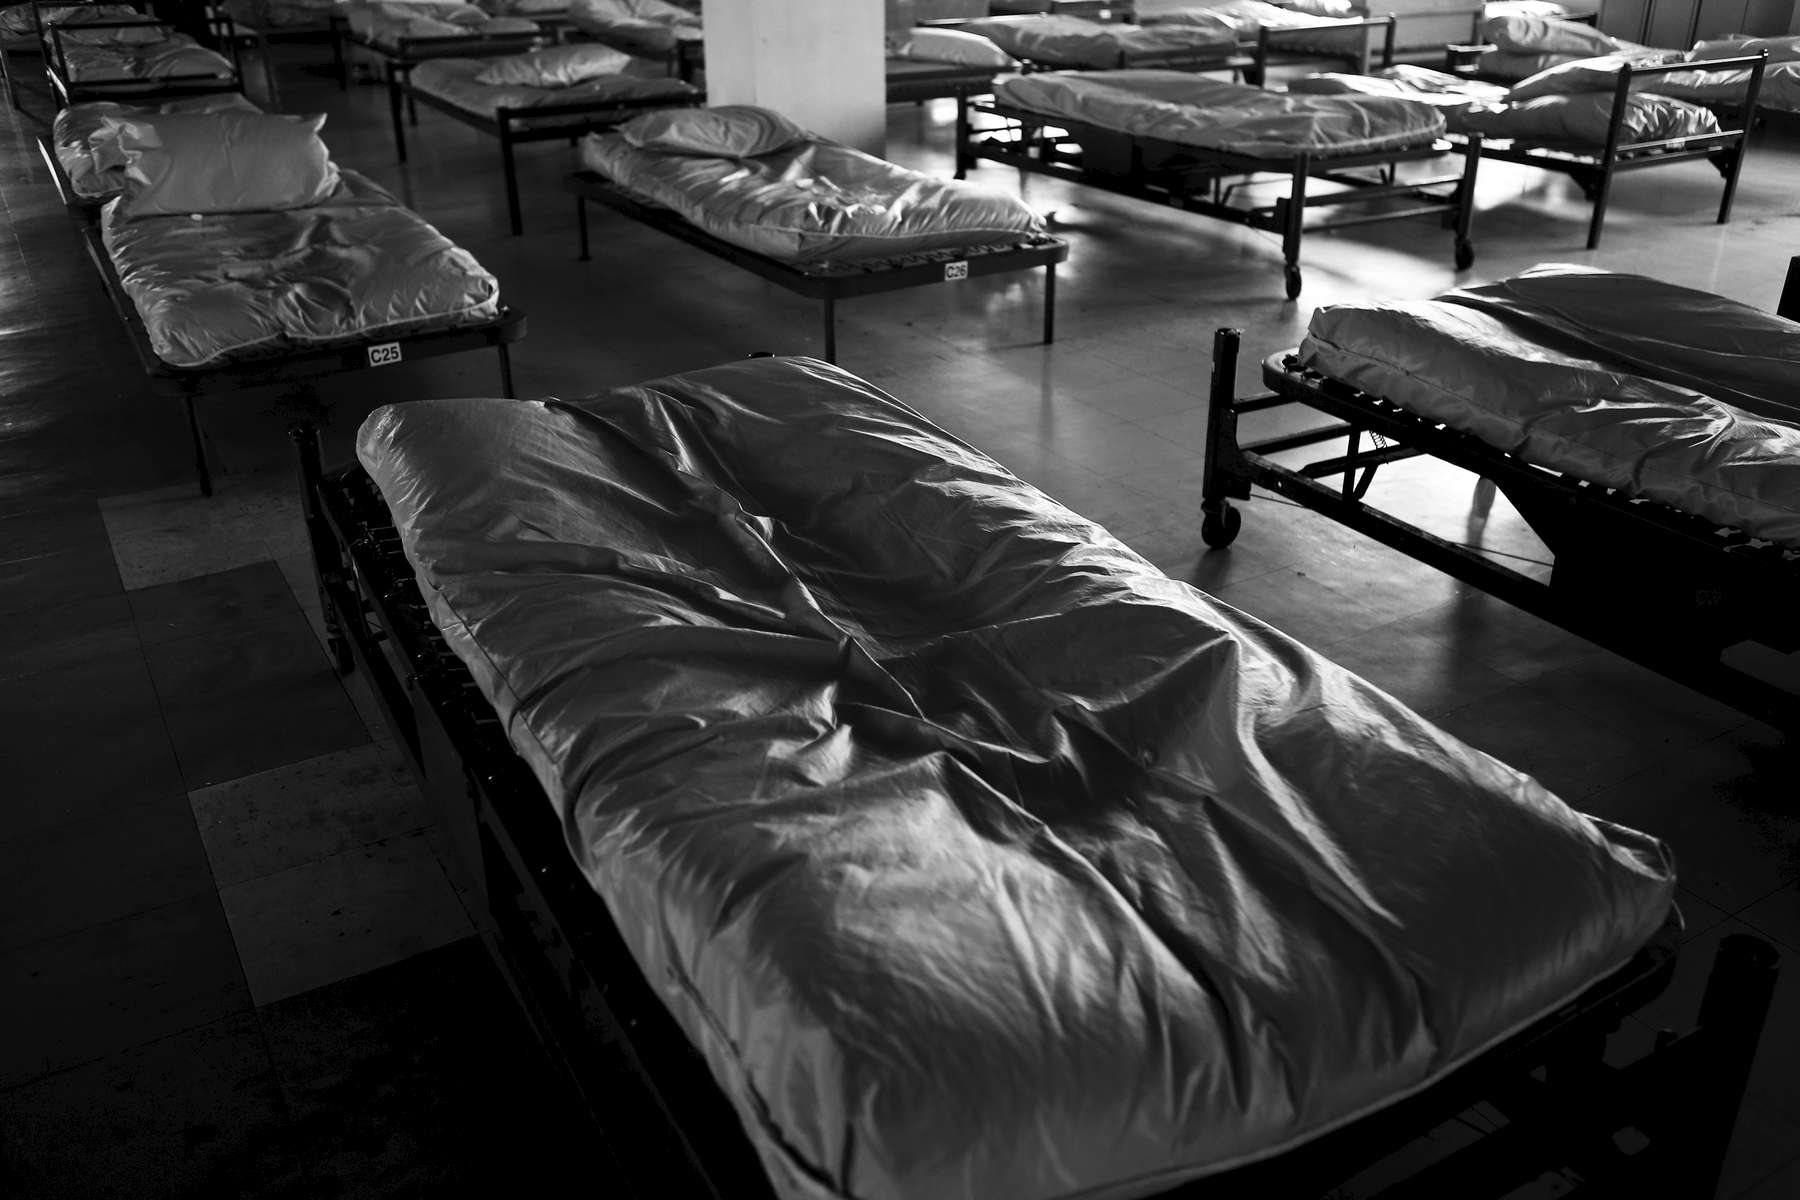 Boston, Massachusetts -- 10/21/2014-- An impression of a body is all that remains on a bed inside the men\'s shelter after the Long Island shelter on Long Island was abruptly evacuated.